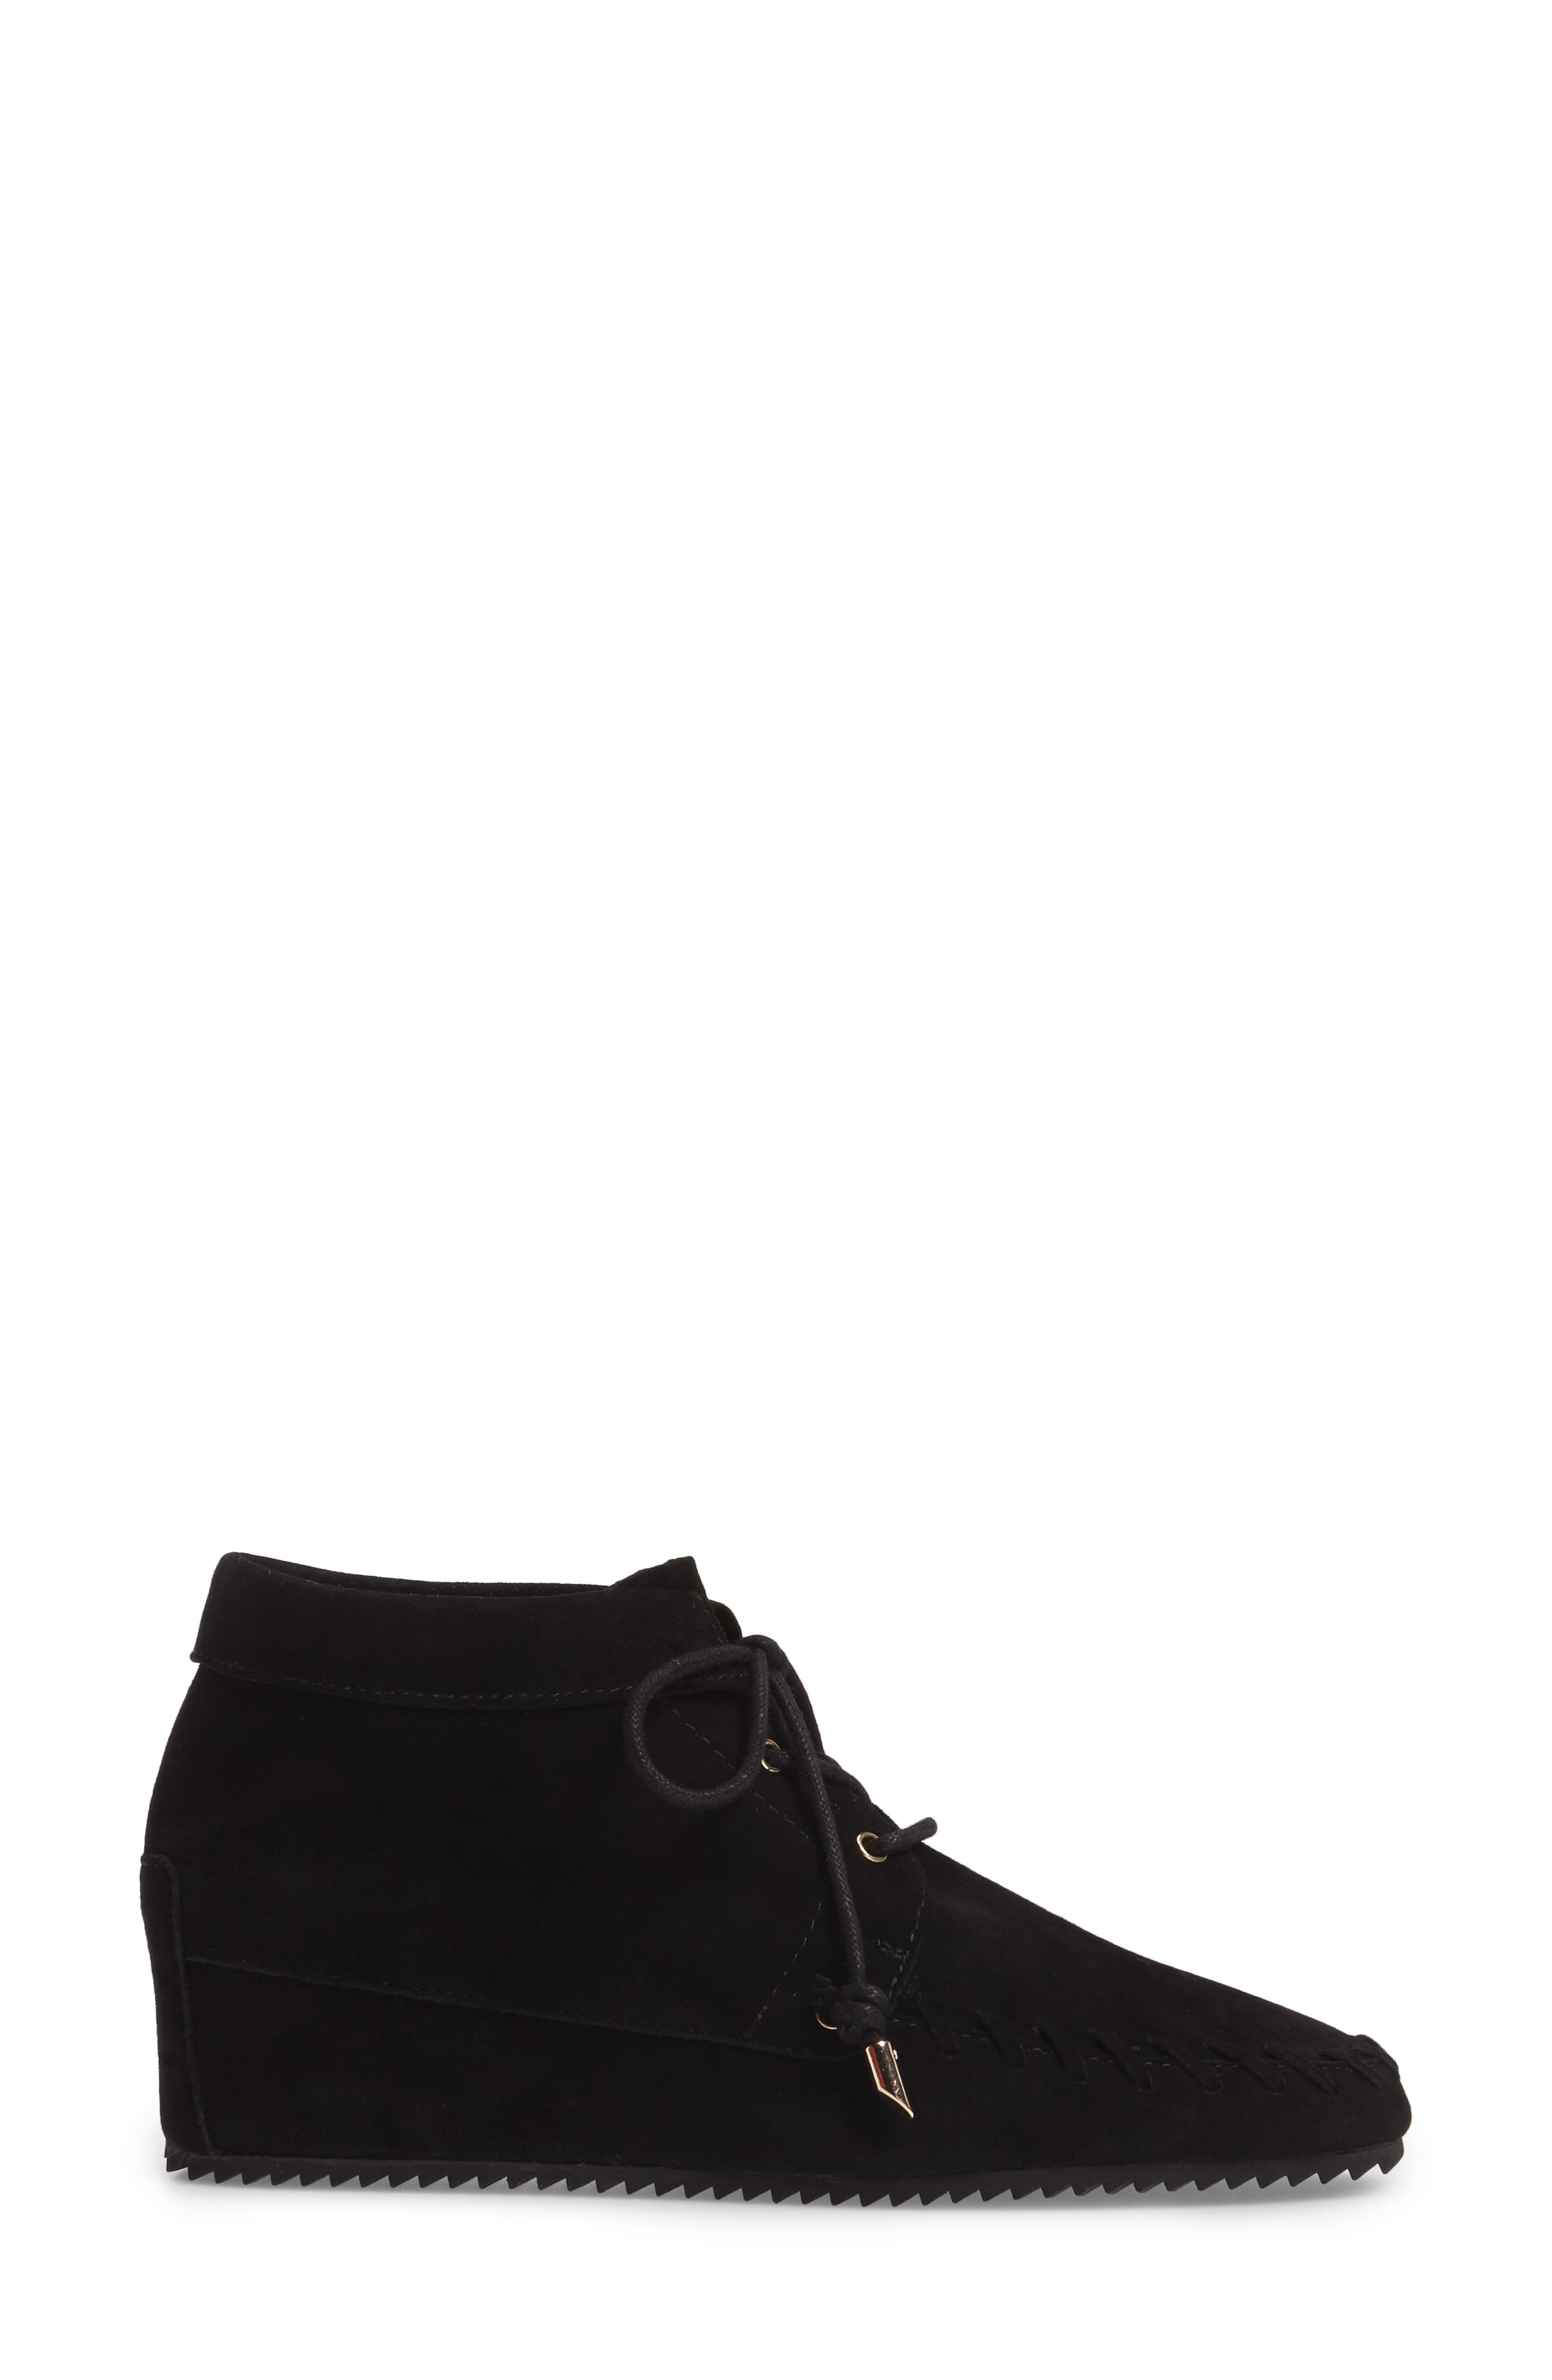 Jenna Wedge Bootie,                             Alternate thumbnail 3, color,                             001